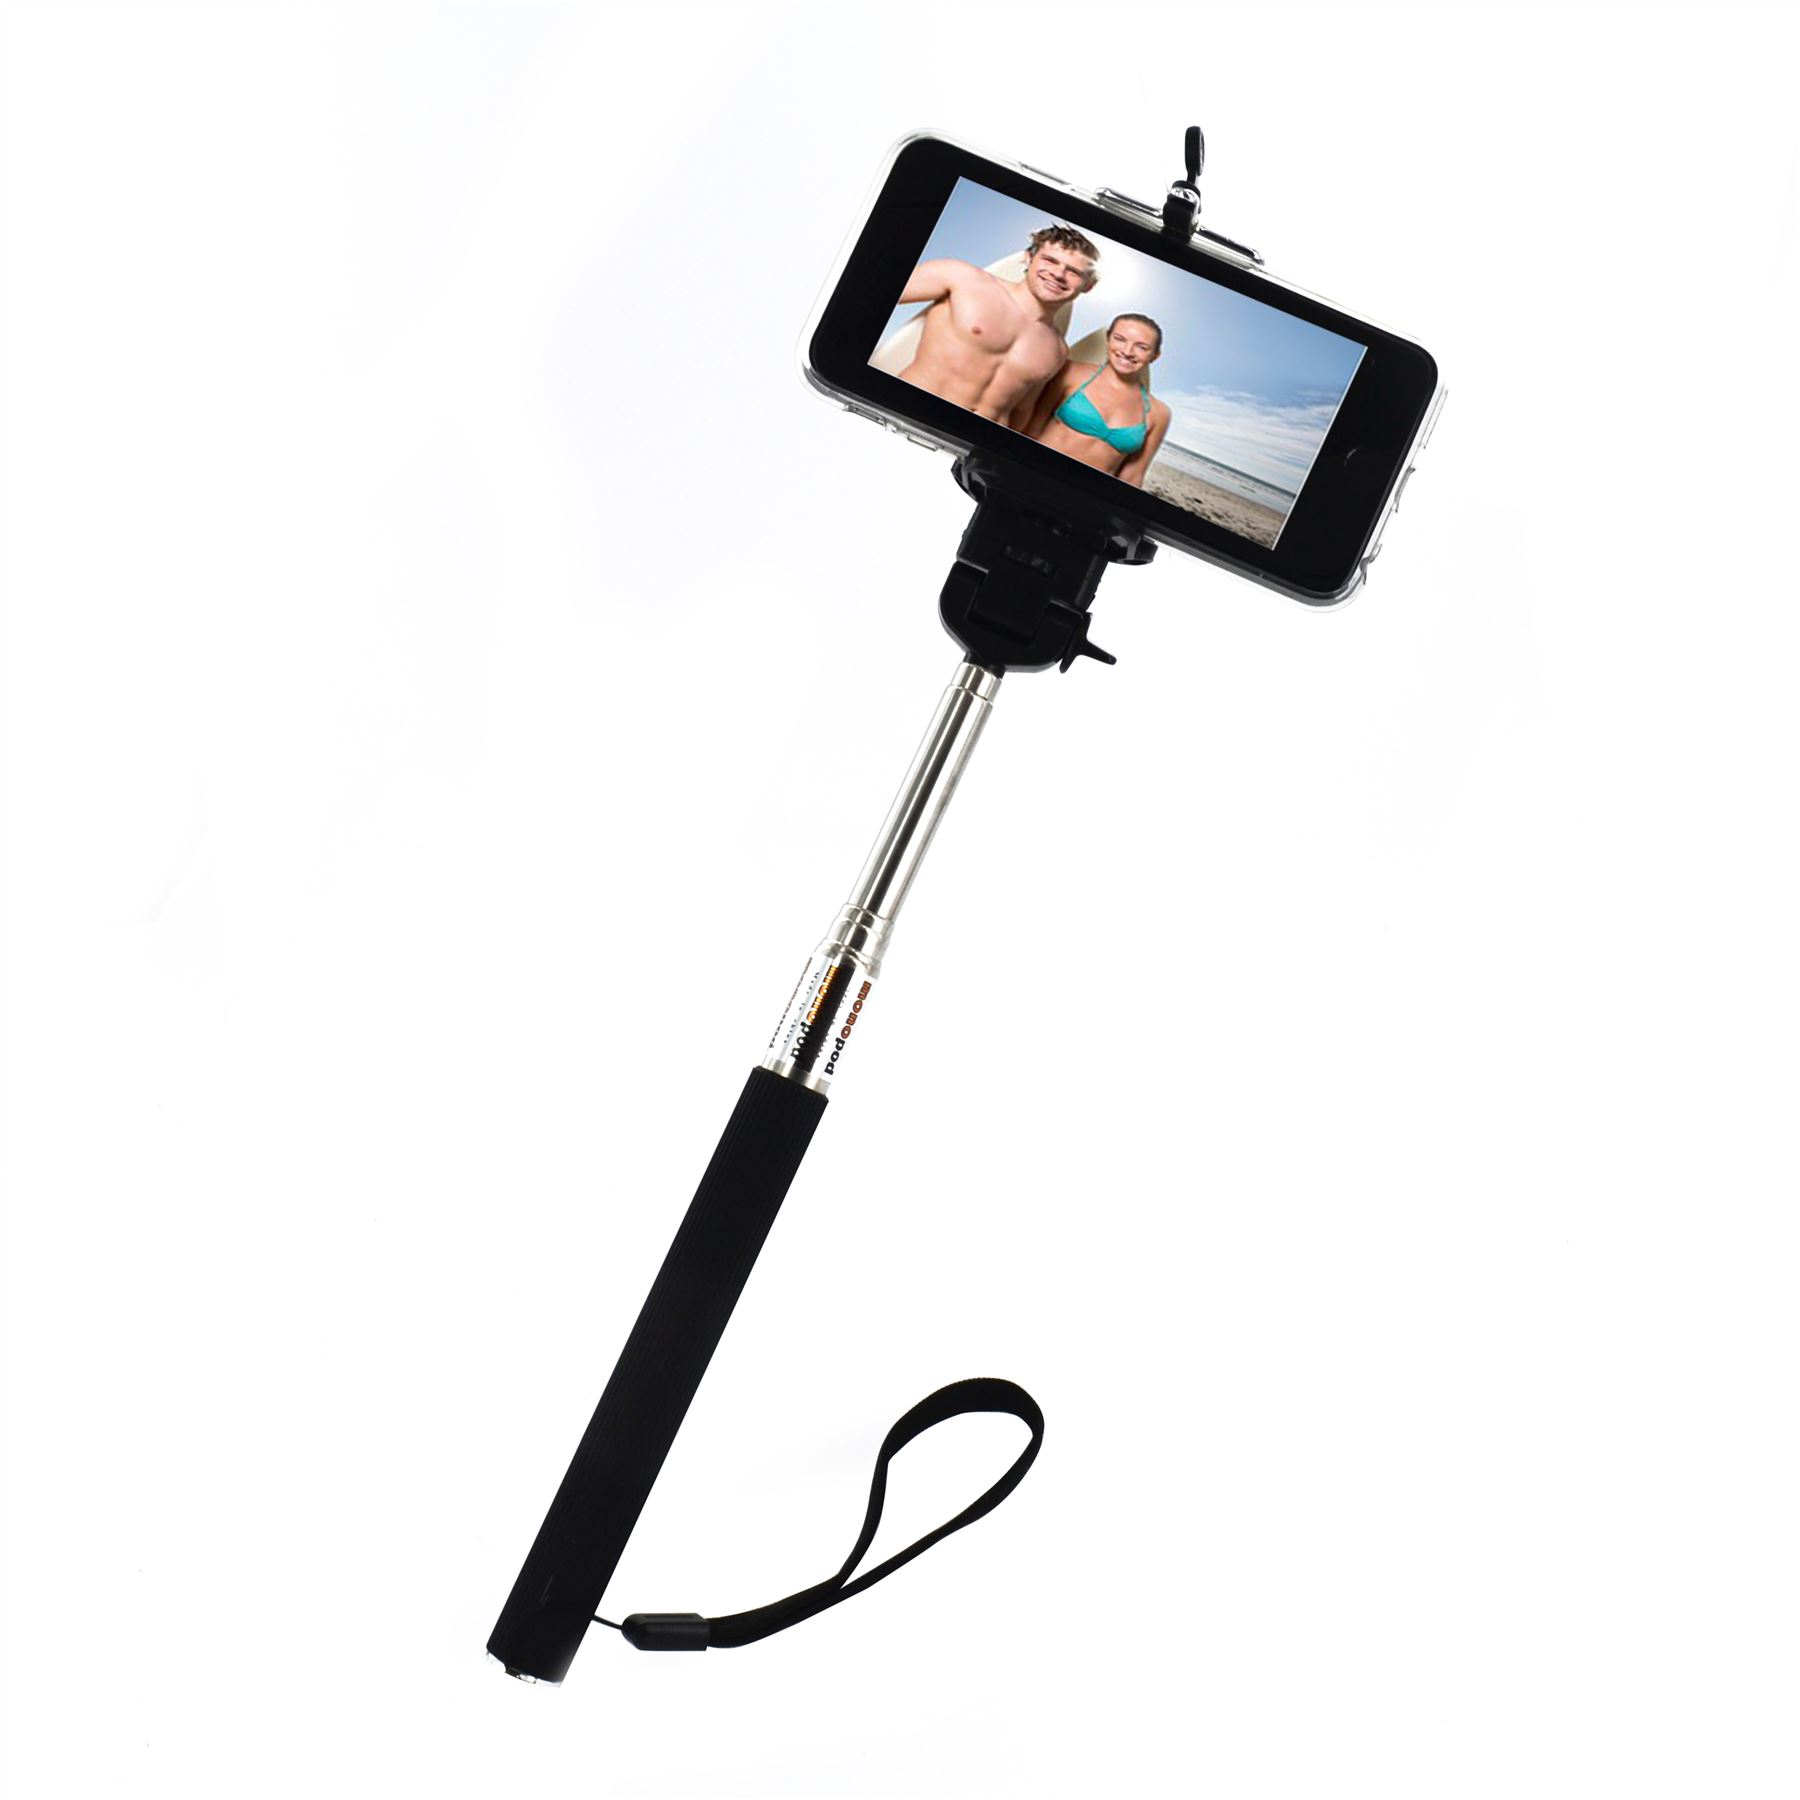 monopod telescopic selfie stick camera mobile smart phone iphone handle holde. Black Bedroom Furniture Sets. Home Design Ideas